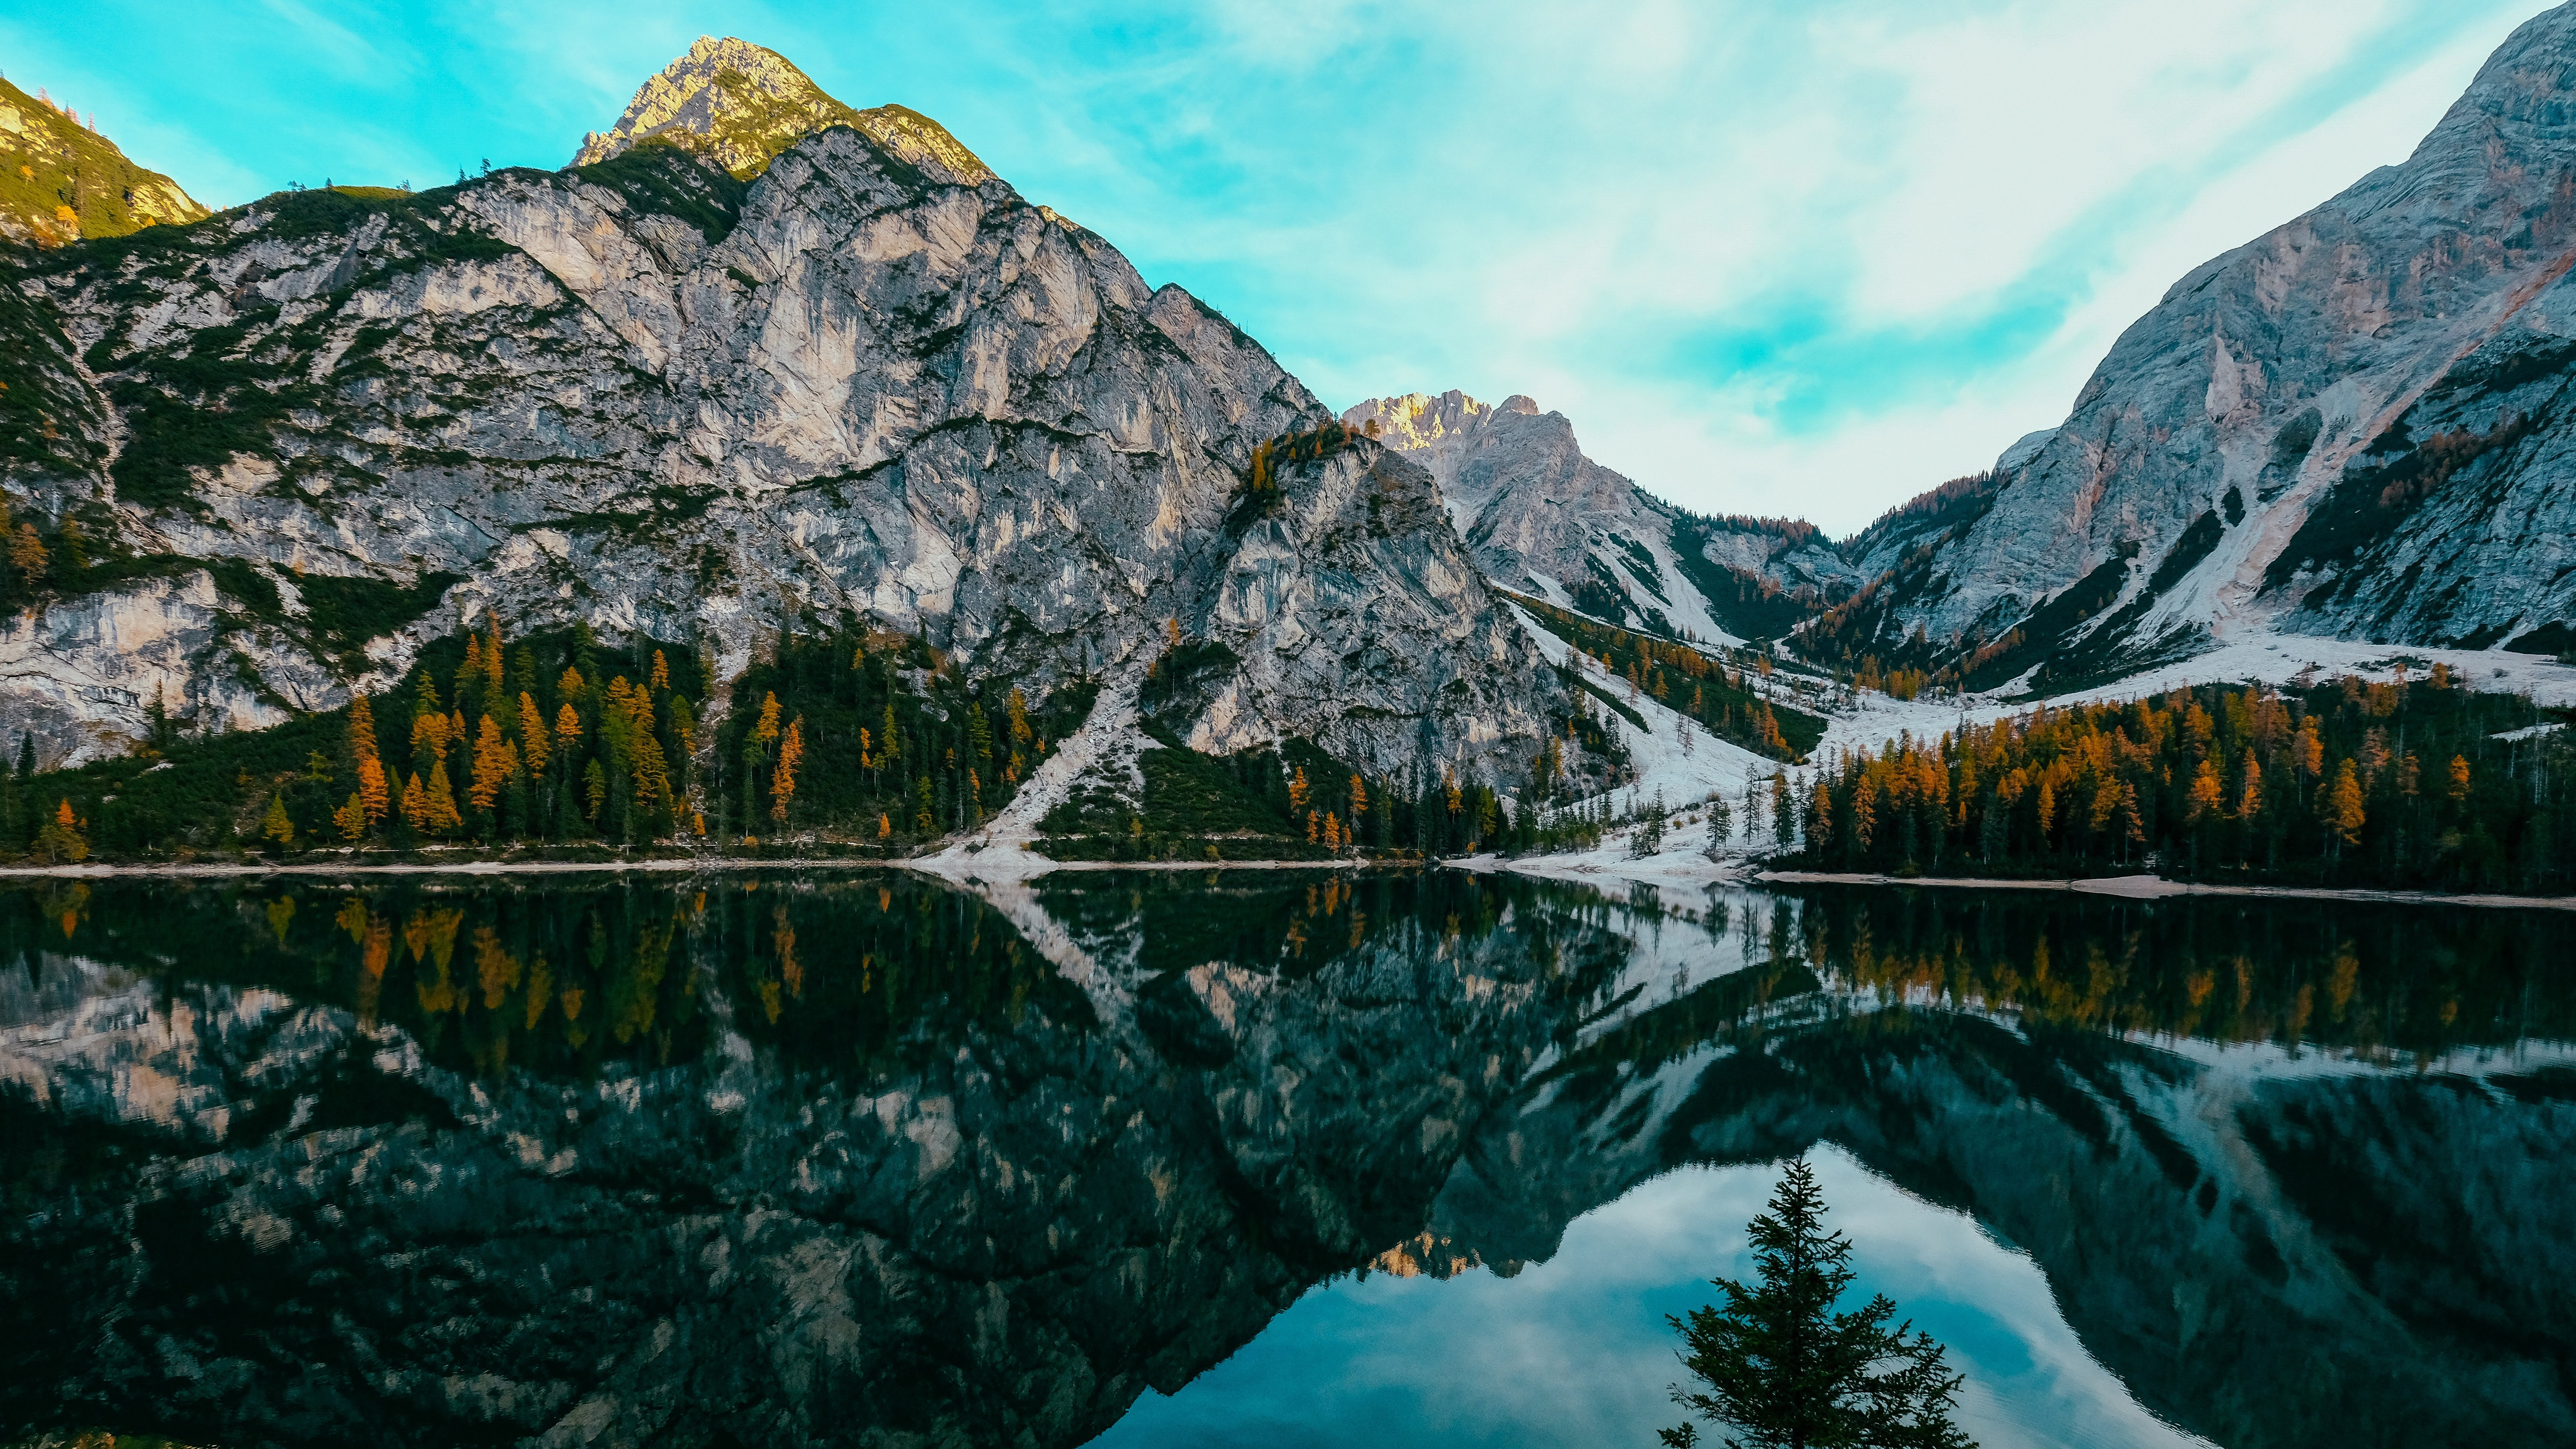 Montain Reflected In Lake Wallpaper 8k Ultra Hd Id3932